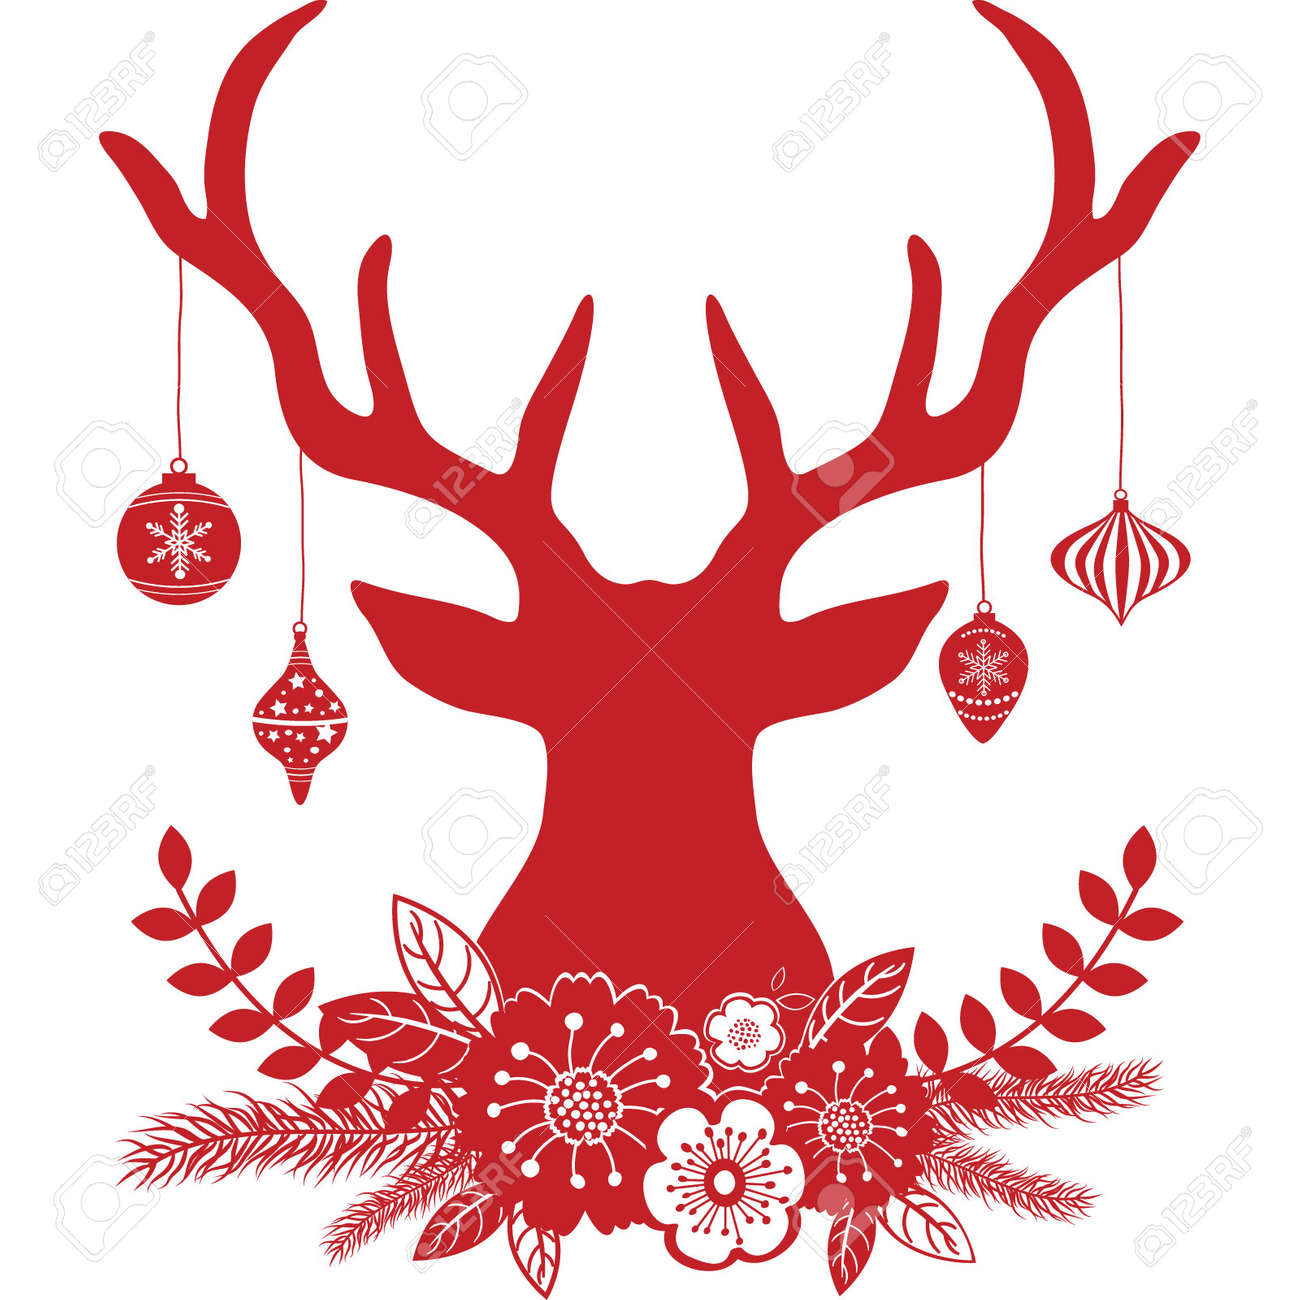 A Christmas Reindeer Clip Art, Merry And Holidays - Transparent Background Reindeer  Christmas Clipart, HD Png Download - kindpng